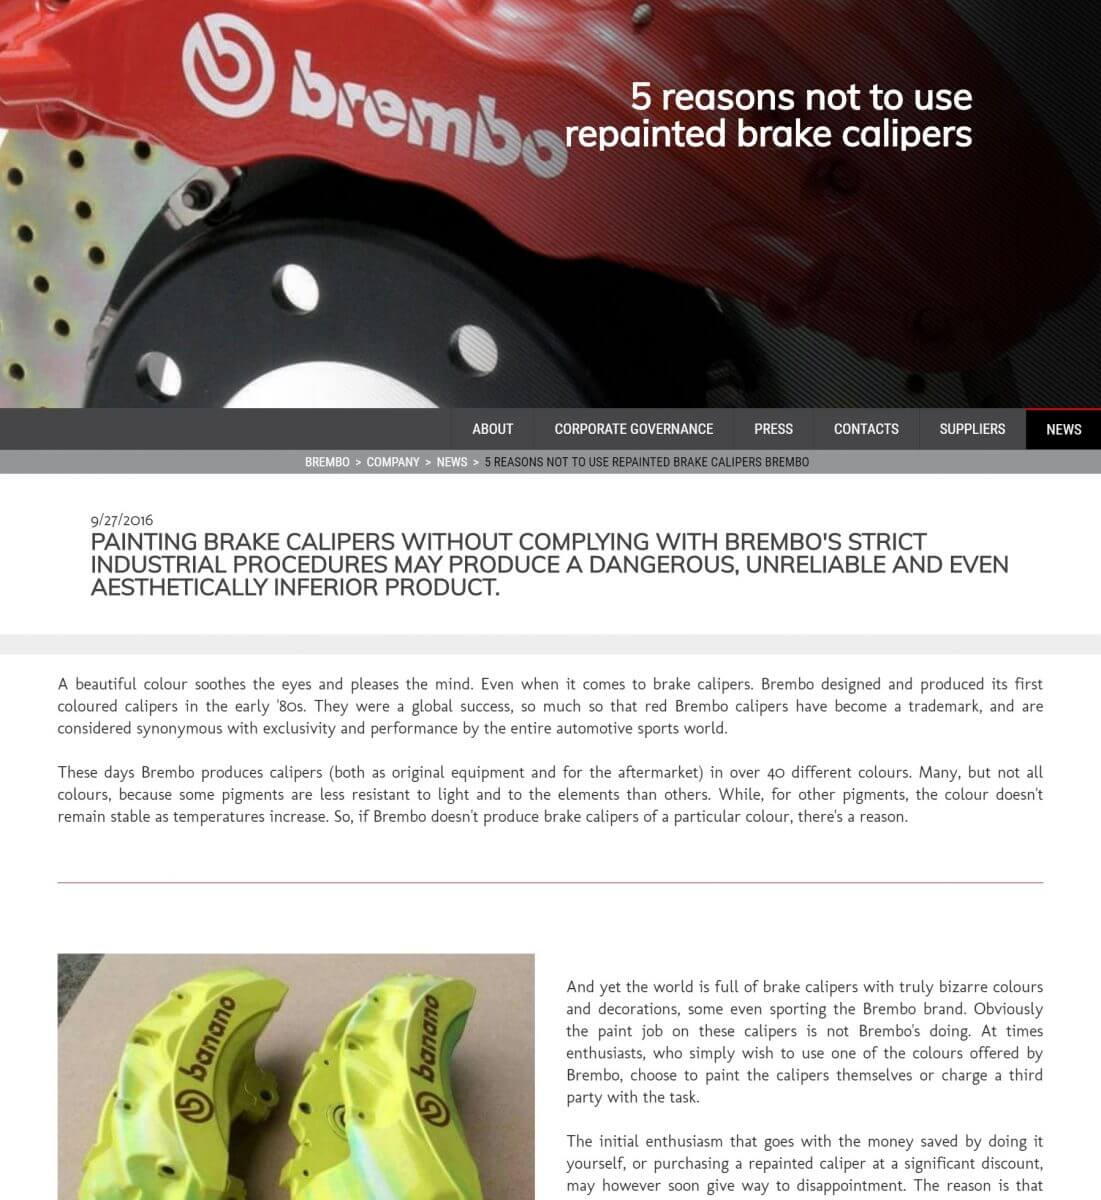 Brembo advise on painting and refurbishing brake calipers